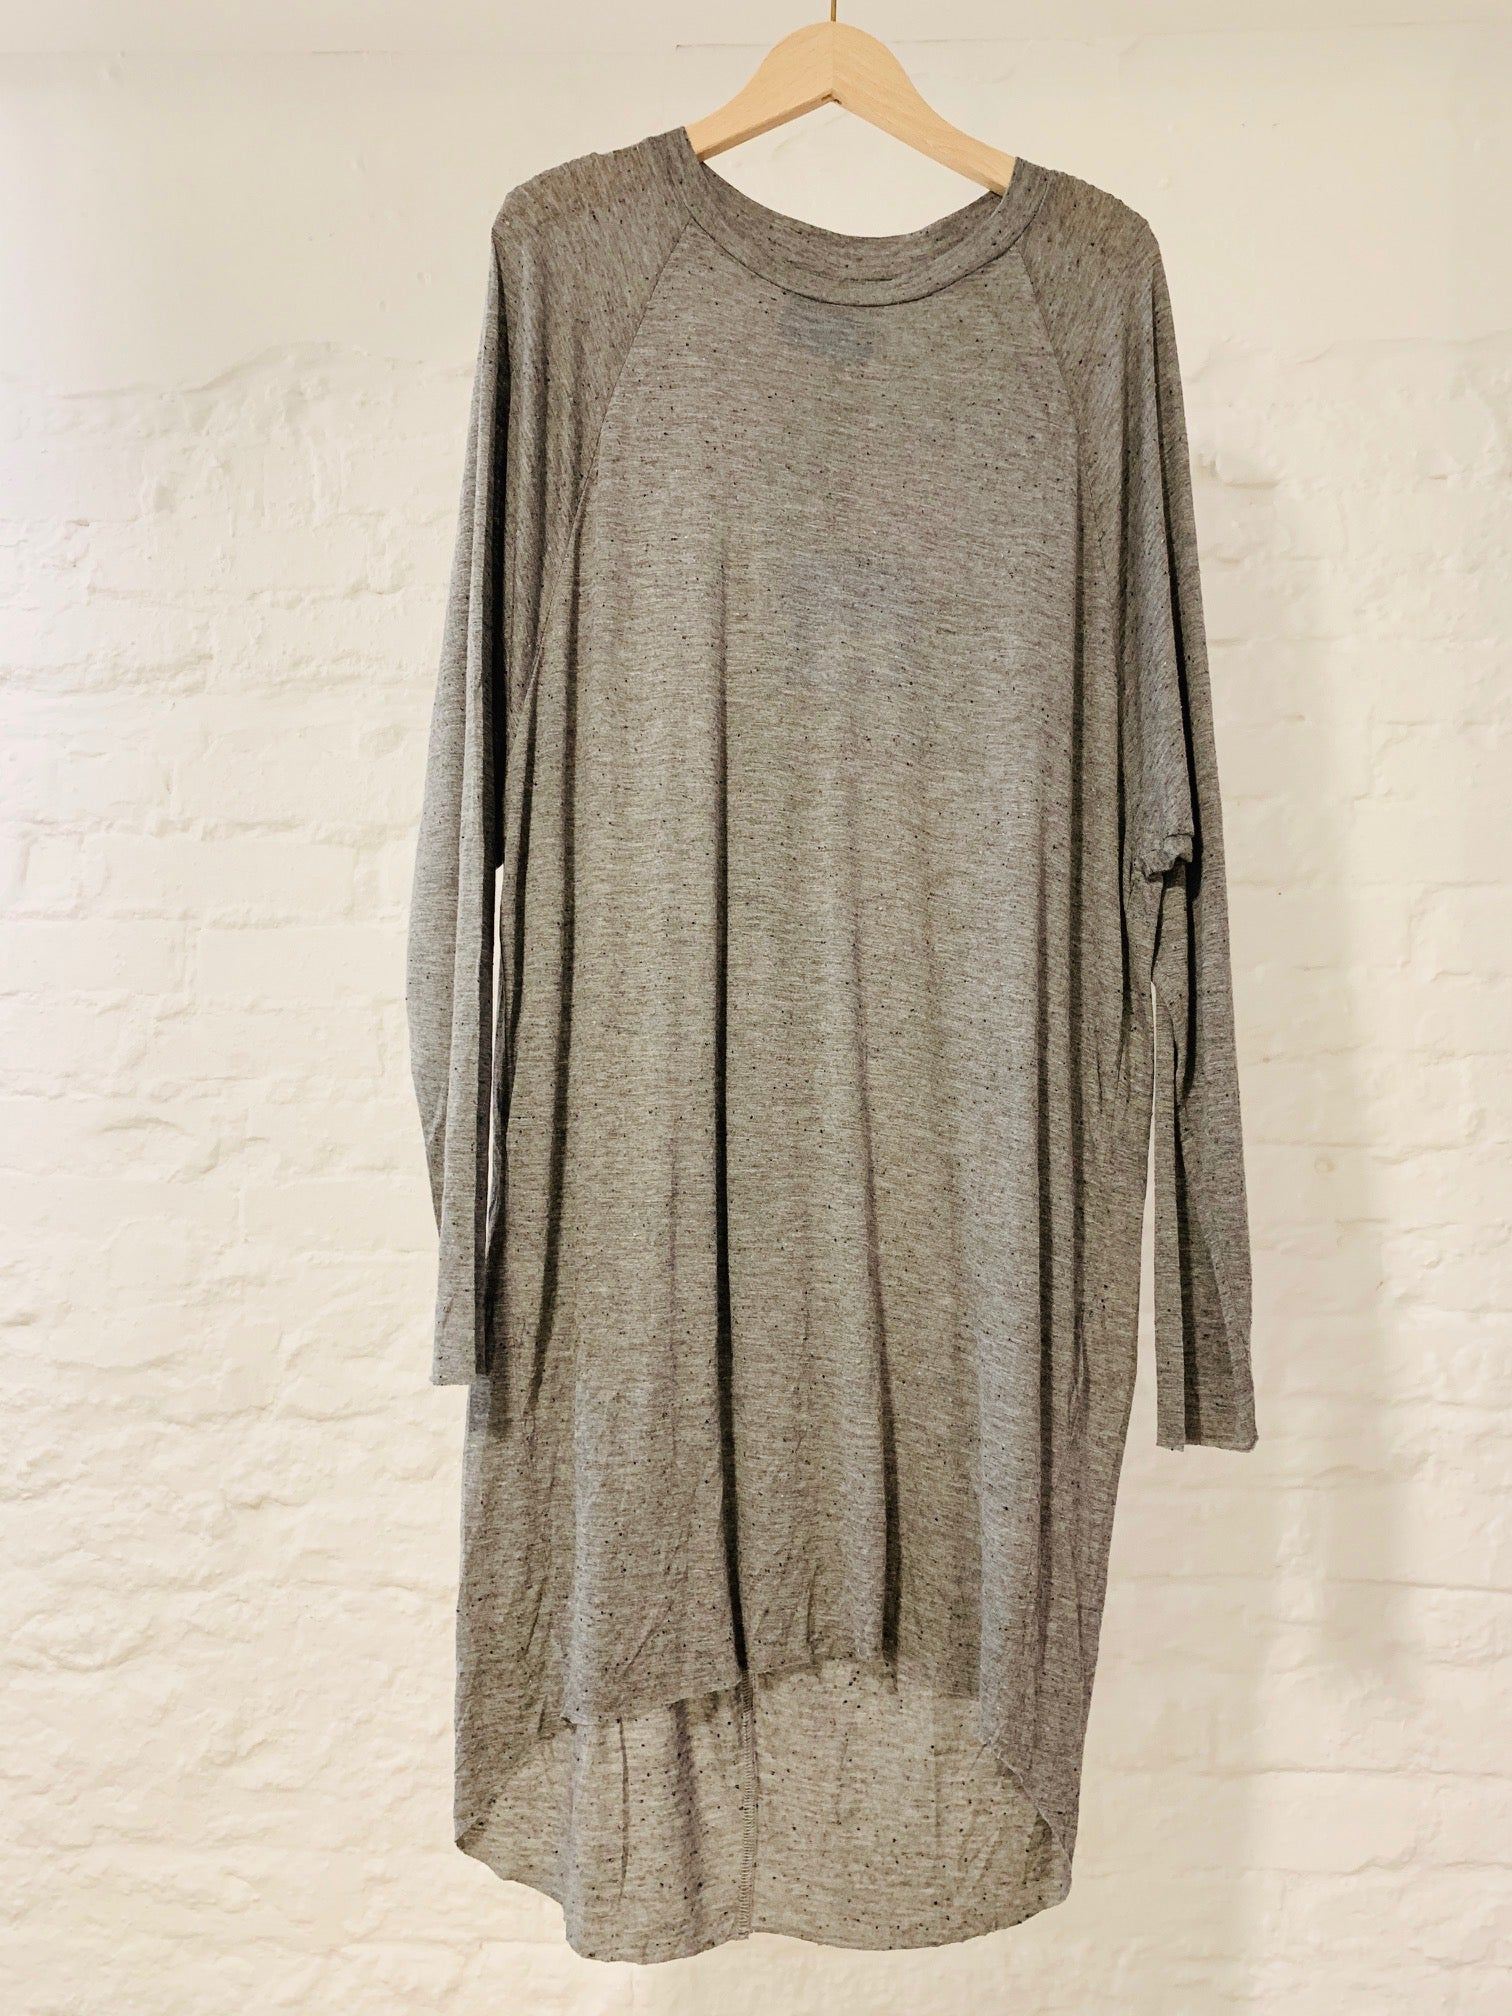 Nauda dress grey jersey